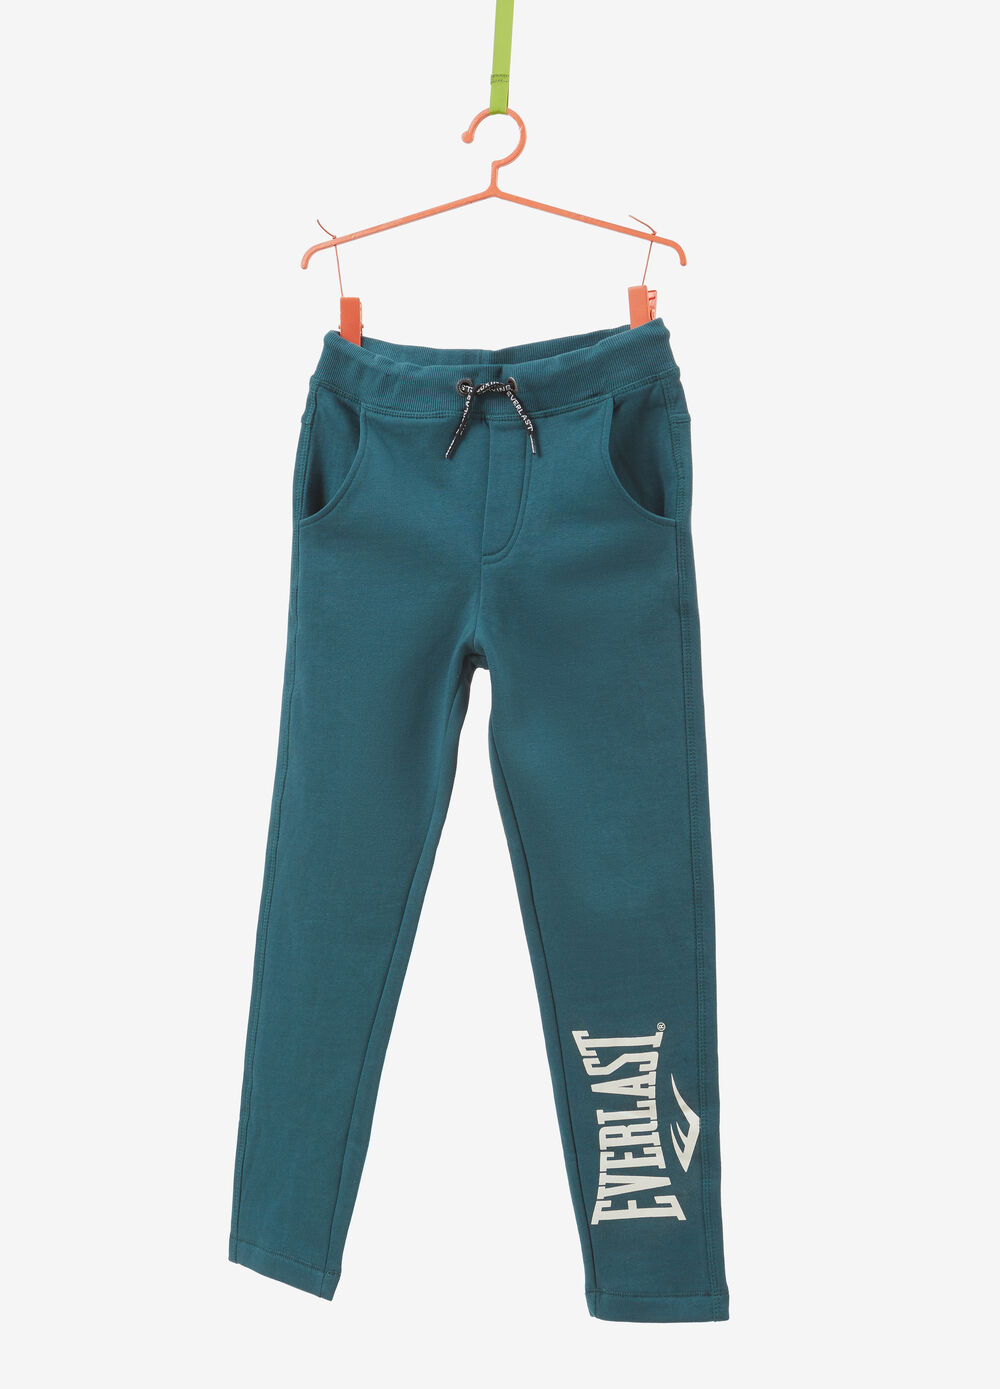 Trousers in 100% cotton with Everlast print